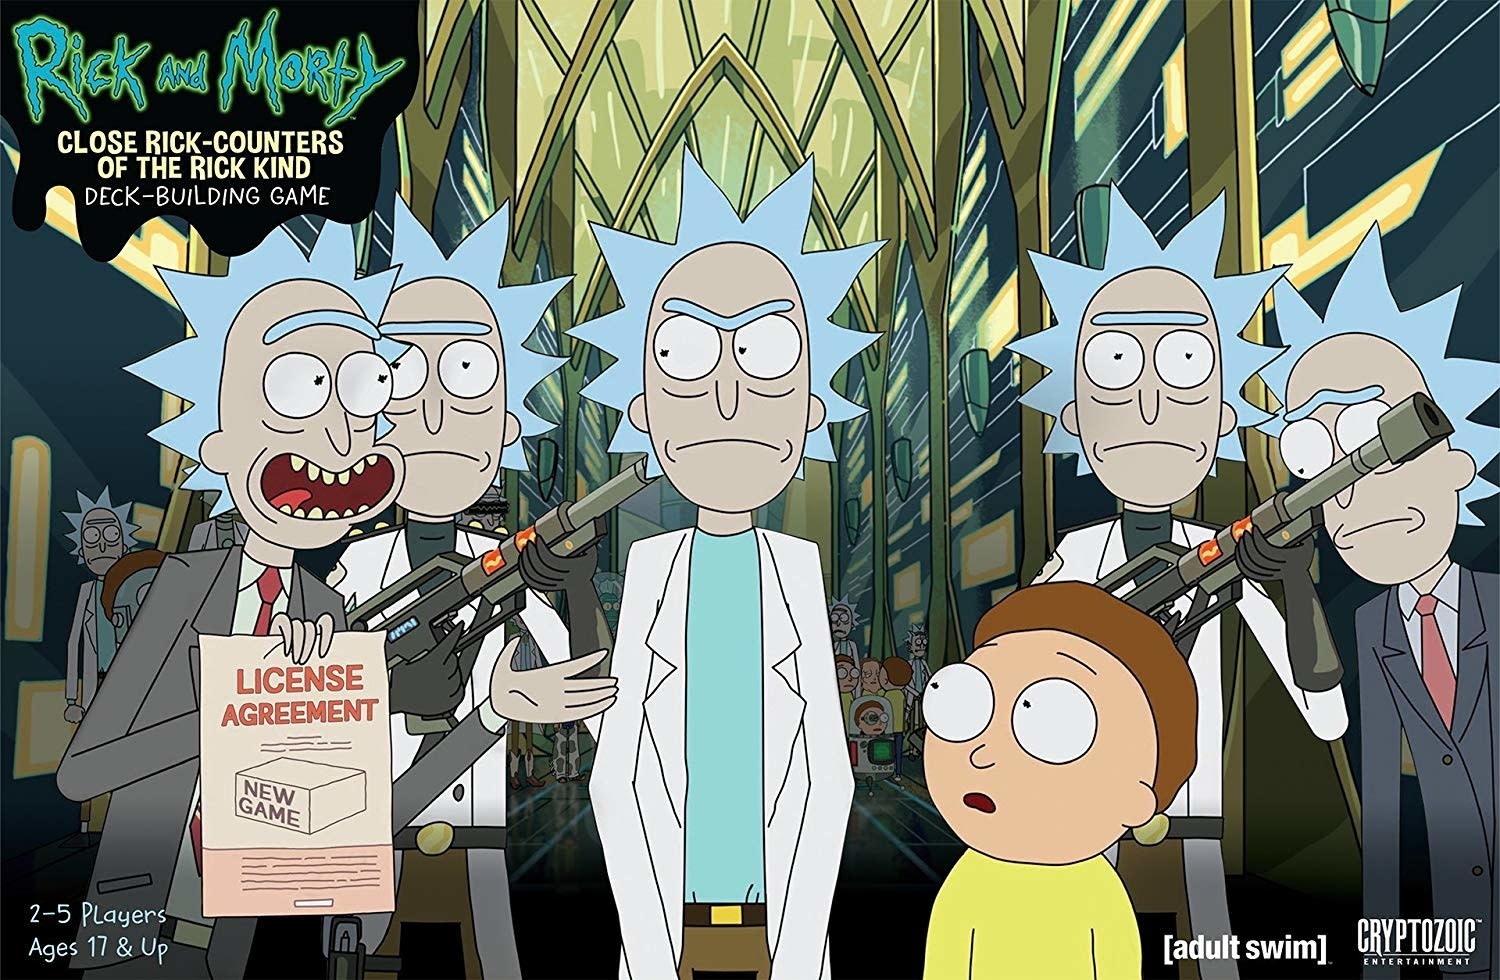 Cryptozoic Rick and Morty: Close Rick-Counters of the Rick Kind - Deck-Building Game